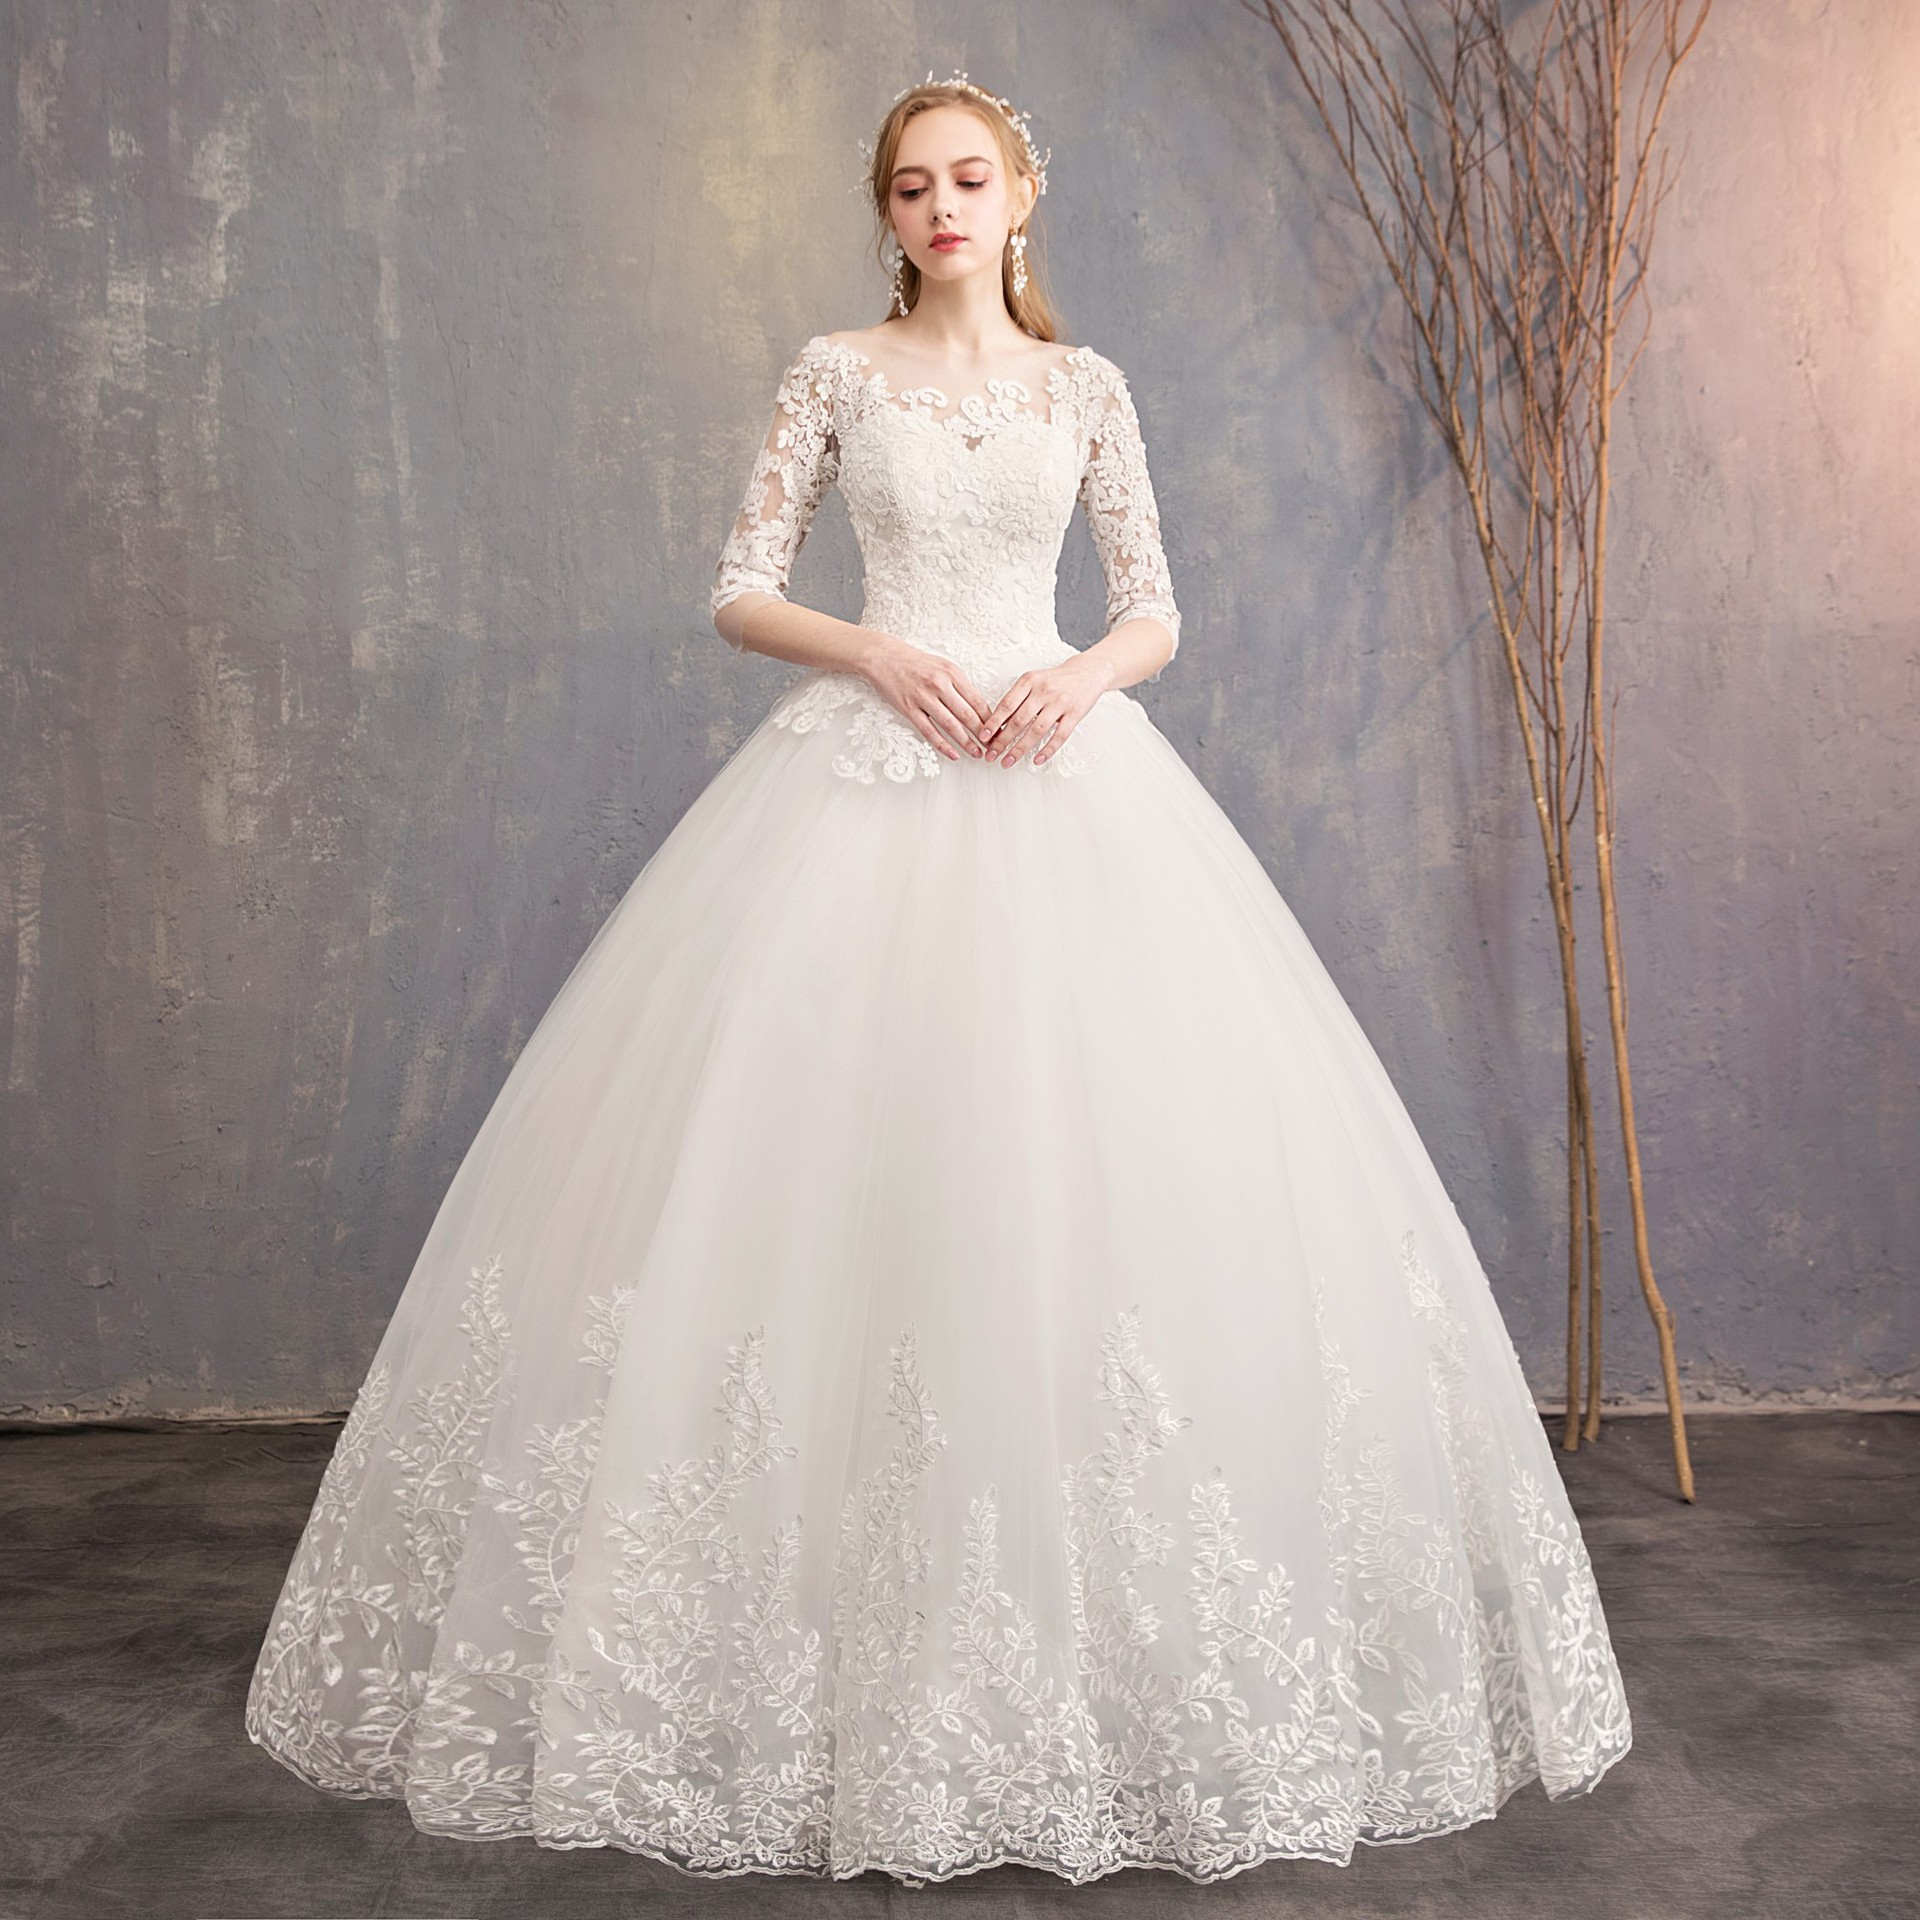 2019 New Arrival EZKUNTZA Half Sleeve Wedding Dress Lace Ball Gown Princess Simple Wedding Gown Bride Dress Vestido De Noiva